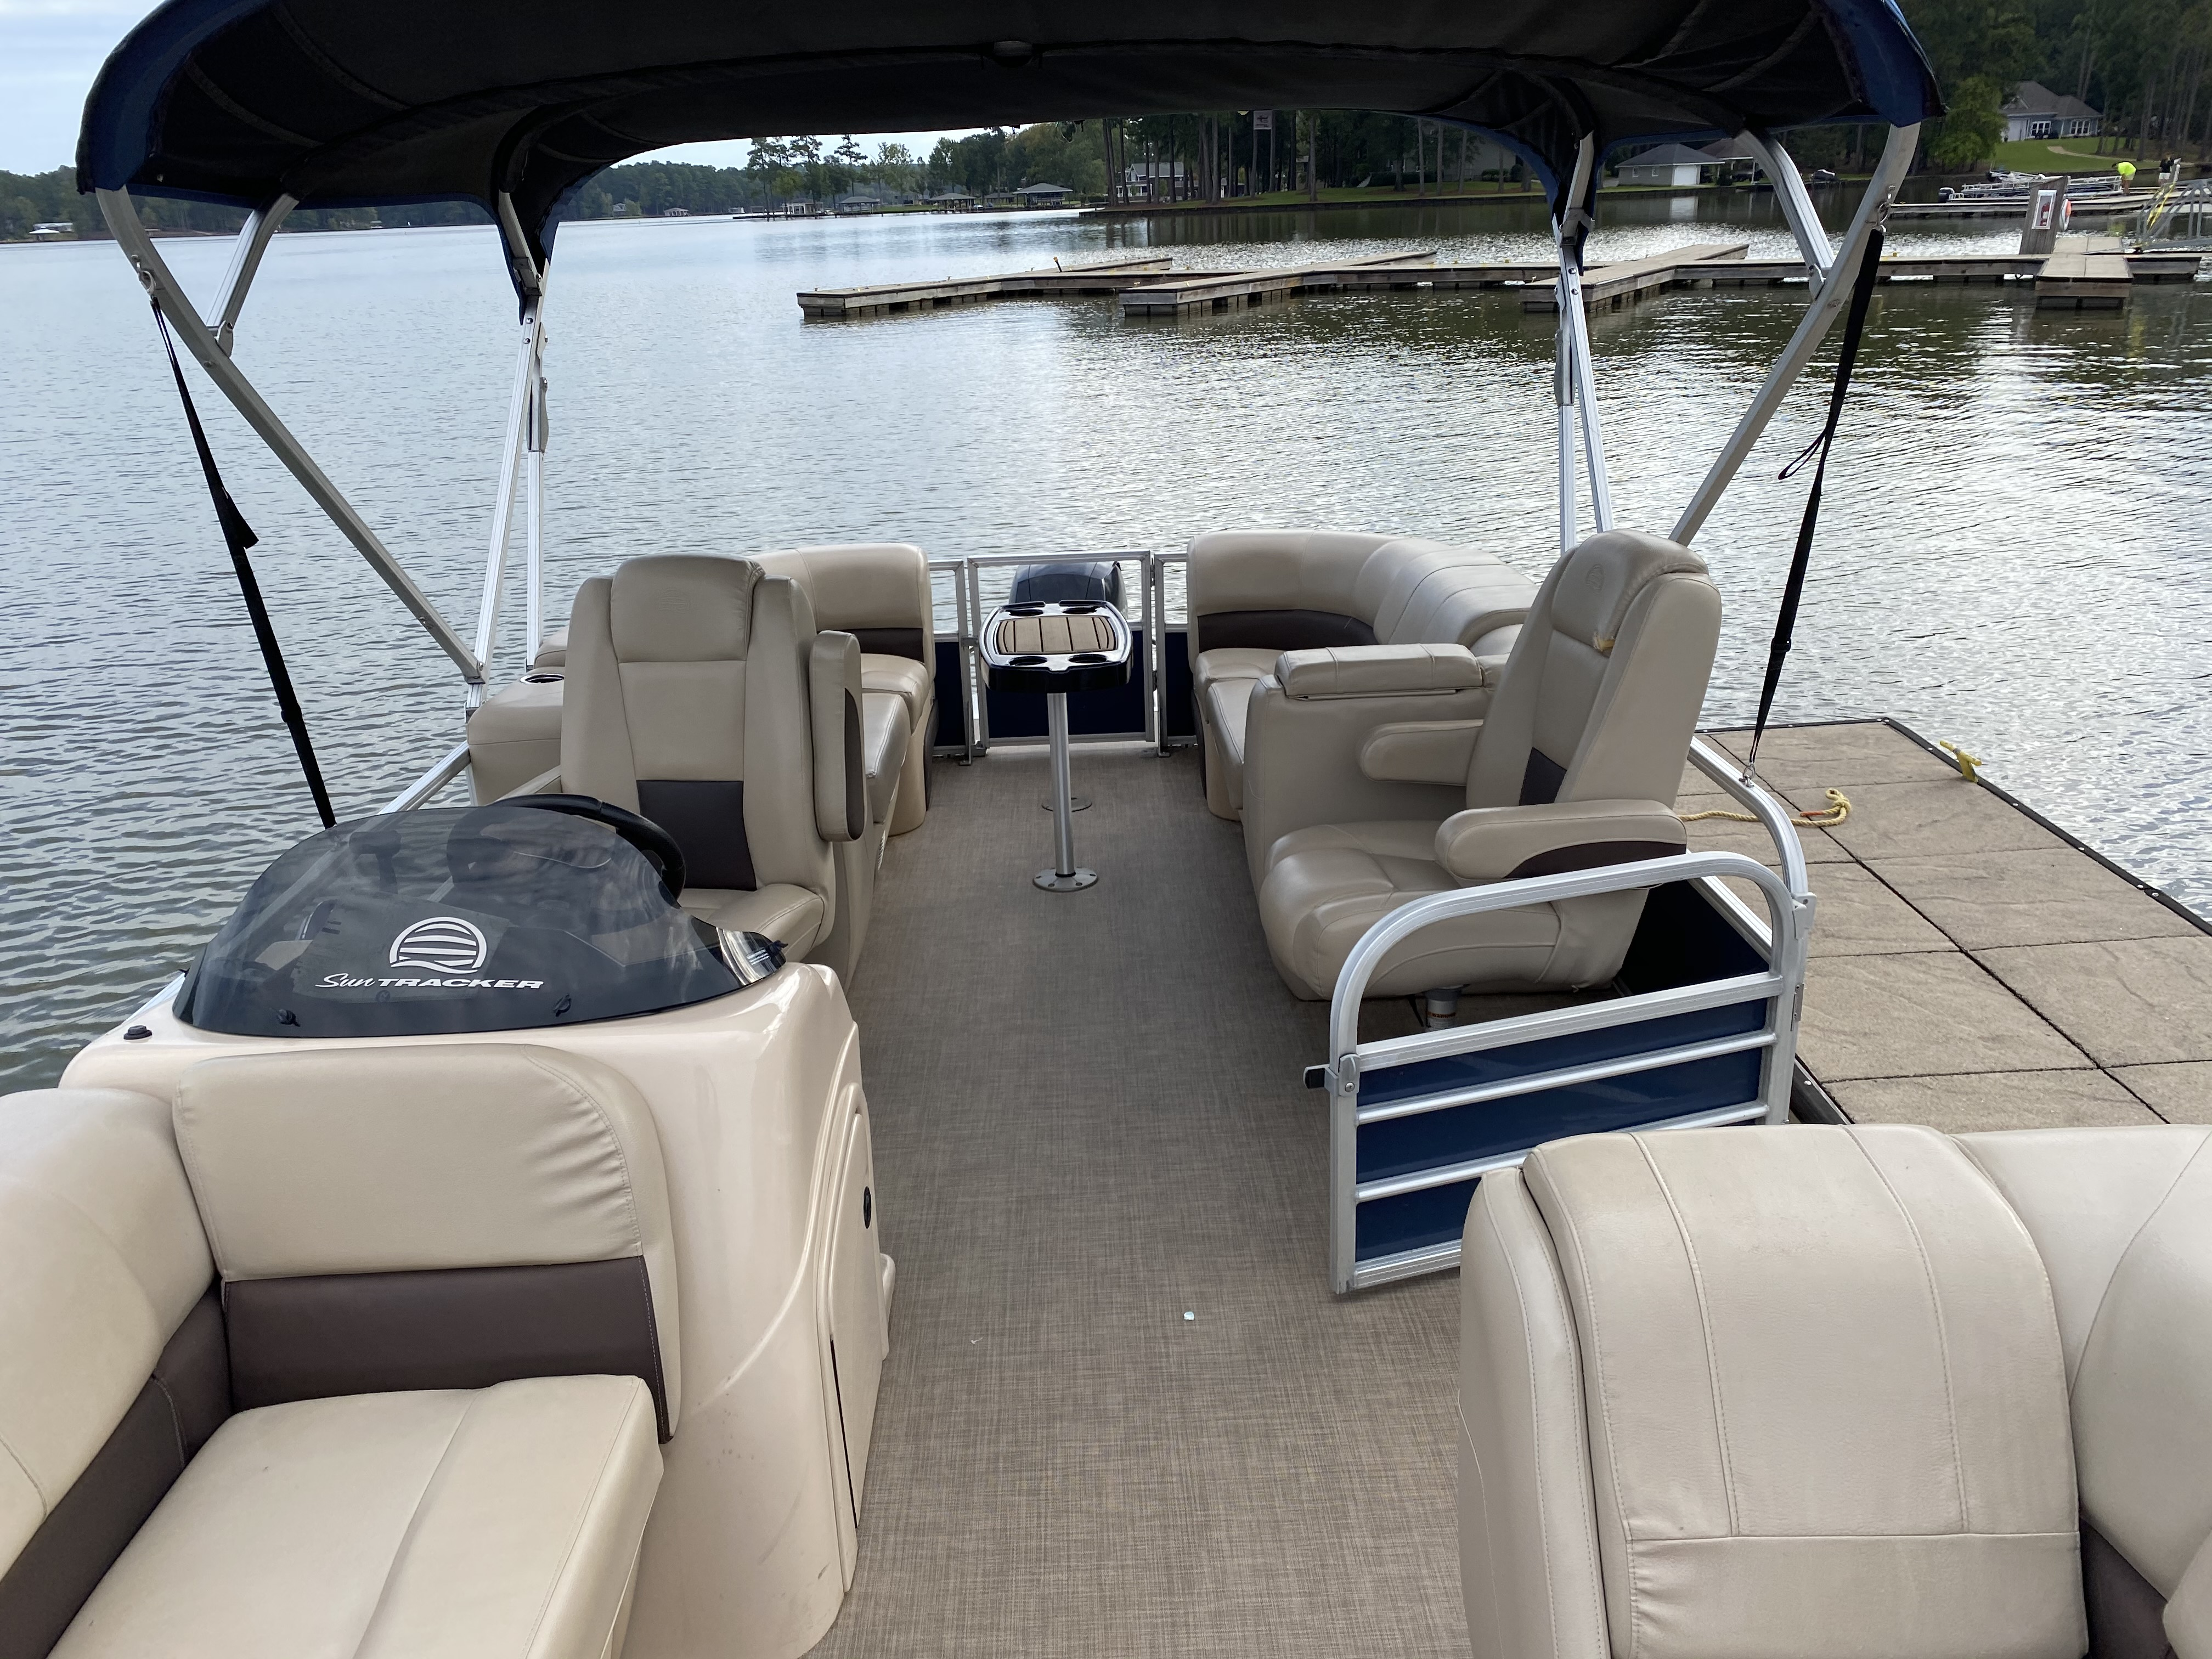 2019 Sun Tracker boat for sale, model of the boat is PARTY BARGE 24 XP3 w/ Mercury 150Hp 4S & Image # 10 of 24